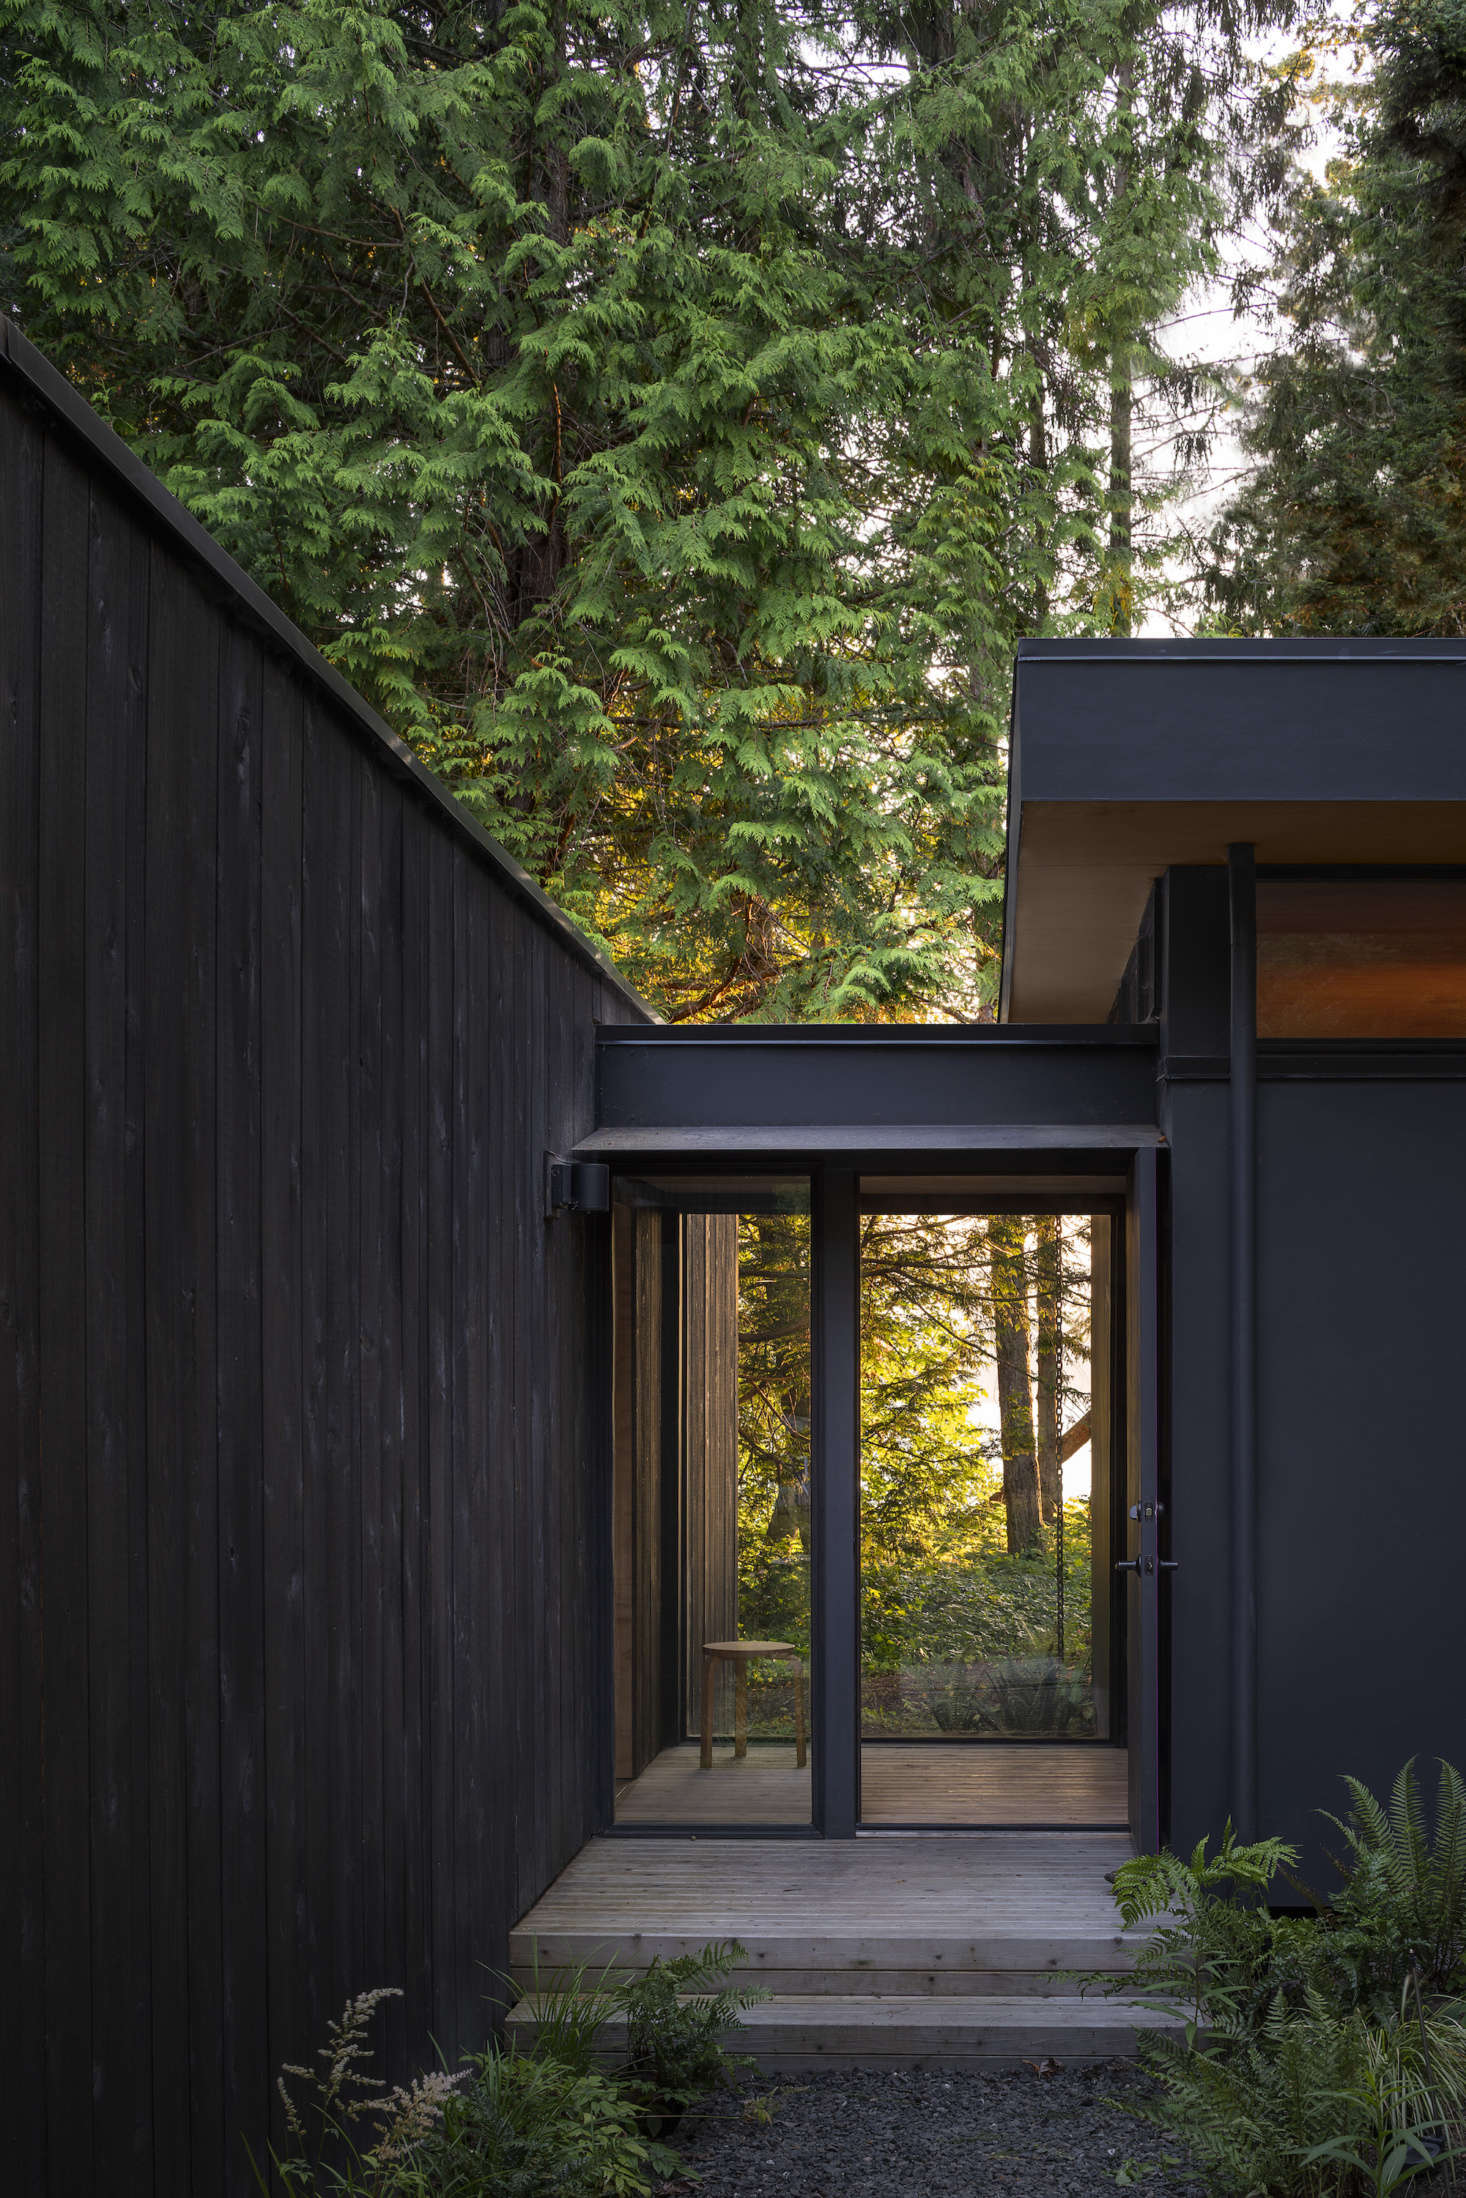 A glass vestibule connects the original main cabin to the new addition, which now houses a bedroom and bathroom. The rough-sawn cedar siding is unpainted to encourage natural aging.